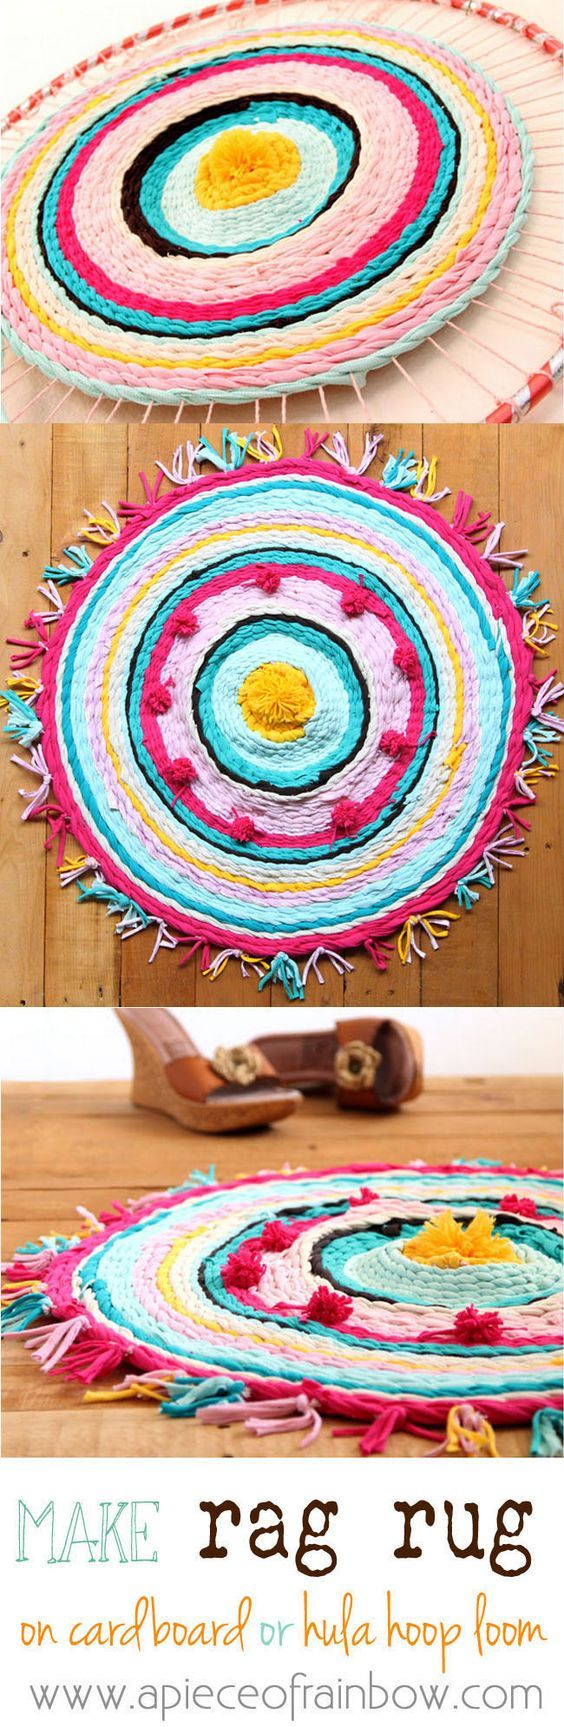 Really fun and detailed tutorial on how to make rag rug from old t-shirts, and how to weave beautiful rugs on a cardboard loom or hula hoop loom!A Piece Of Rainbow: